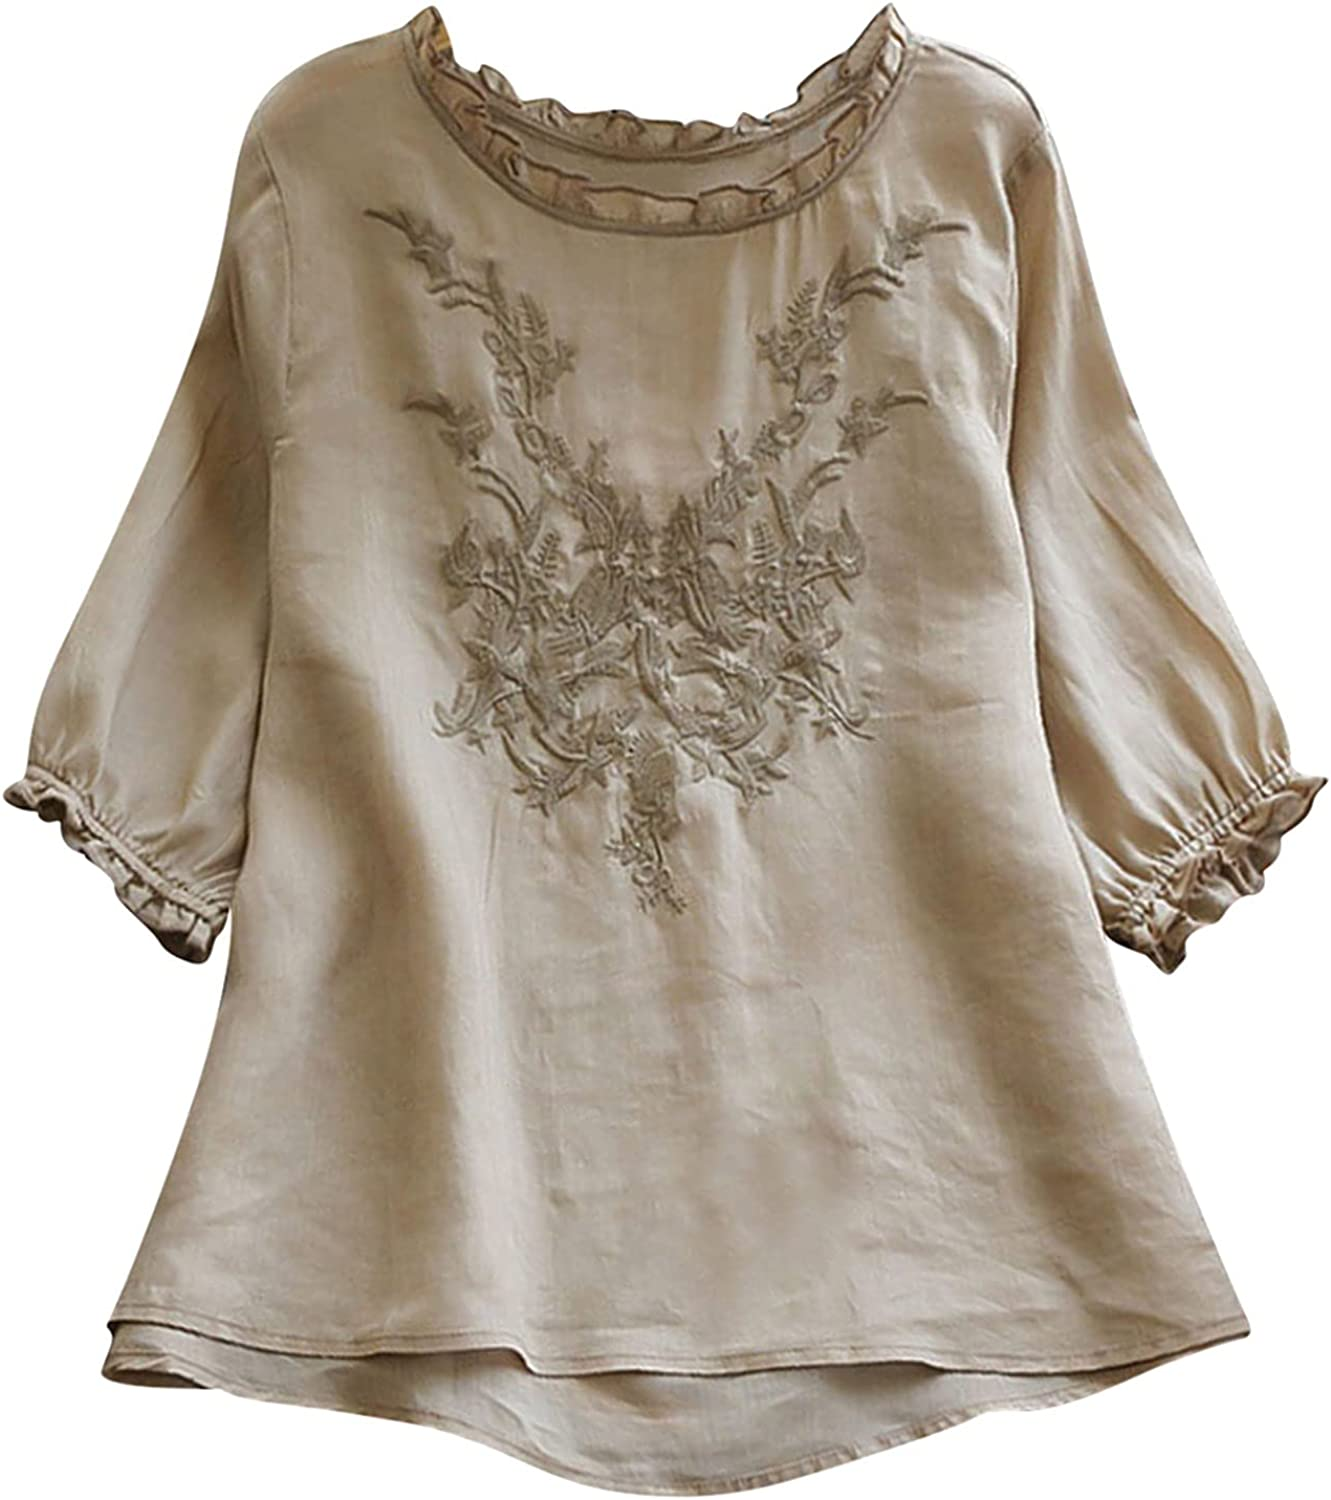 Women Tops Plus Size Fall Shirt Blouse Embroidered Floral Lace Half Sleeve O Neck Pullover Casual Loose T-Shirt